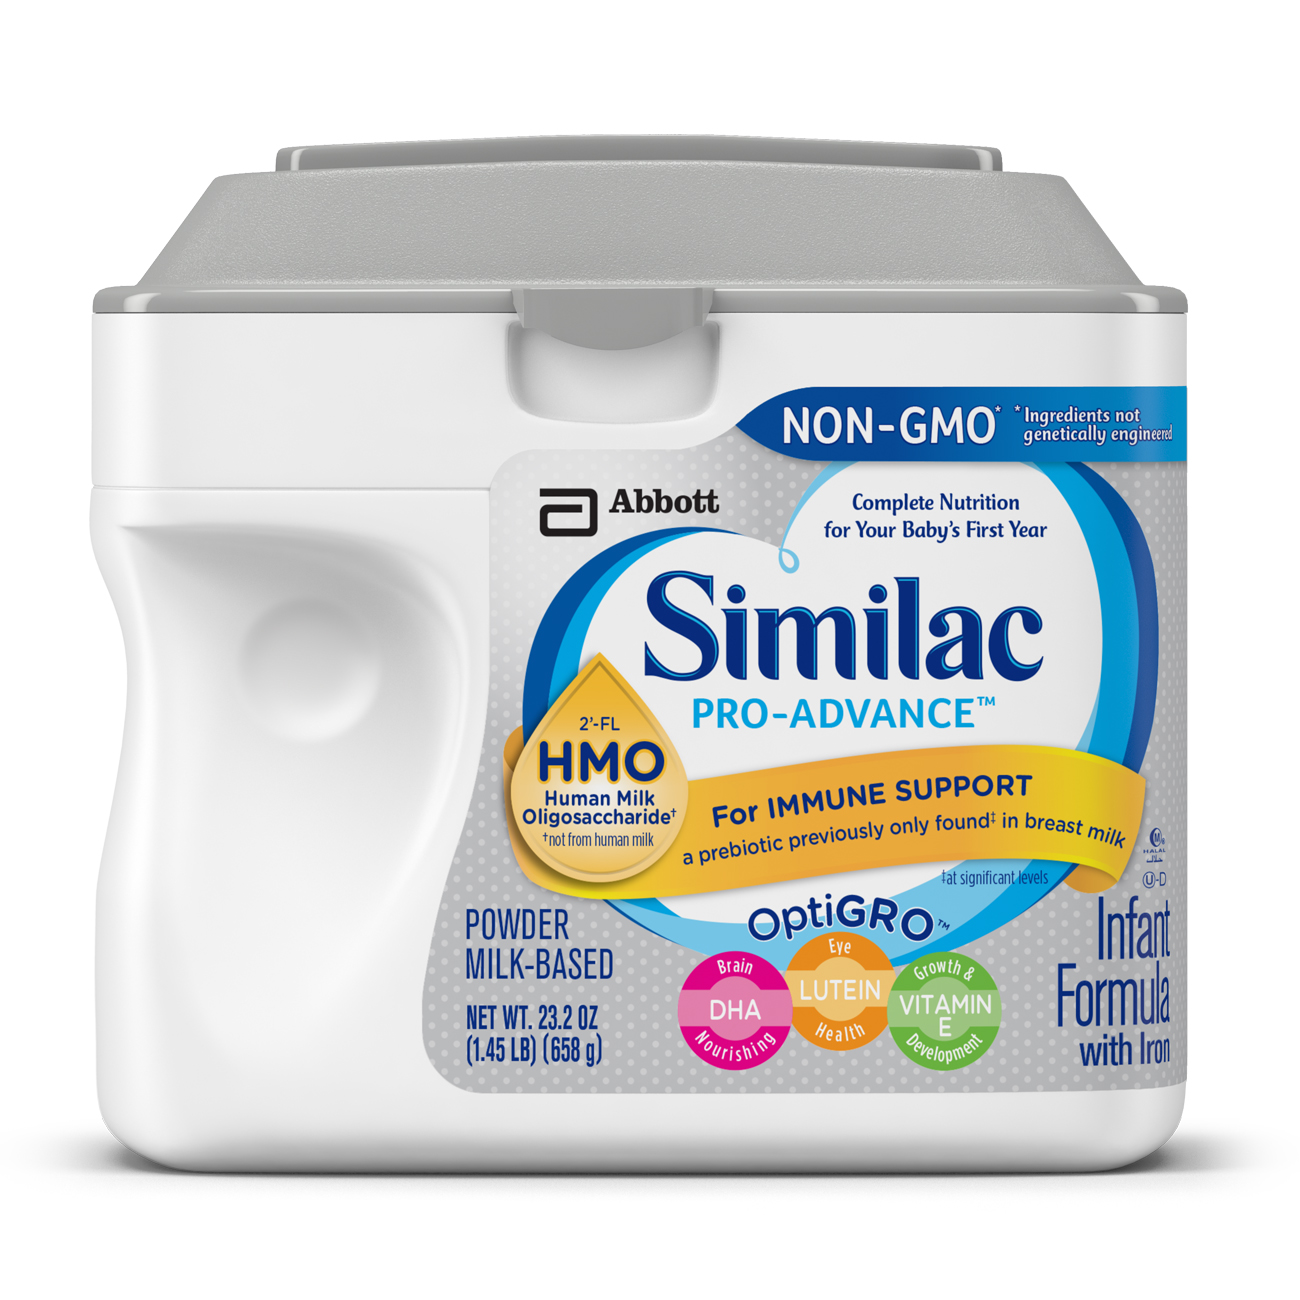 Similac Pro-Advance Infant Formula with 2'-FL Human Milk Oligosaccharide (HMO) for Immune Support, 23.2 ounces by Similac